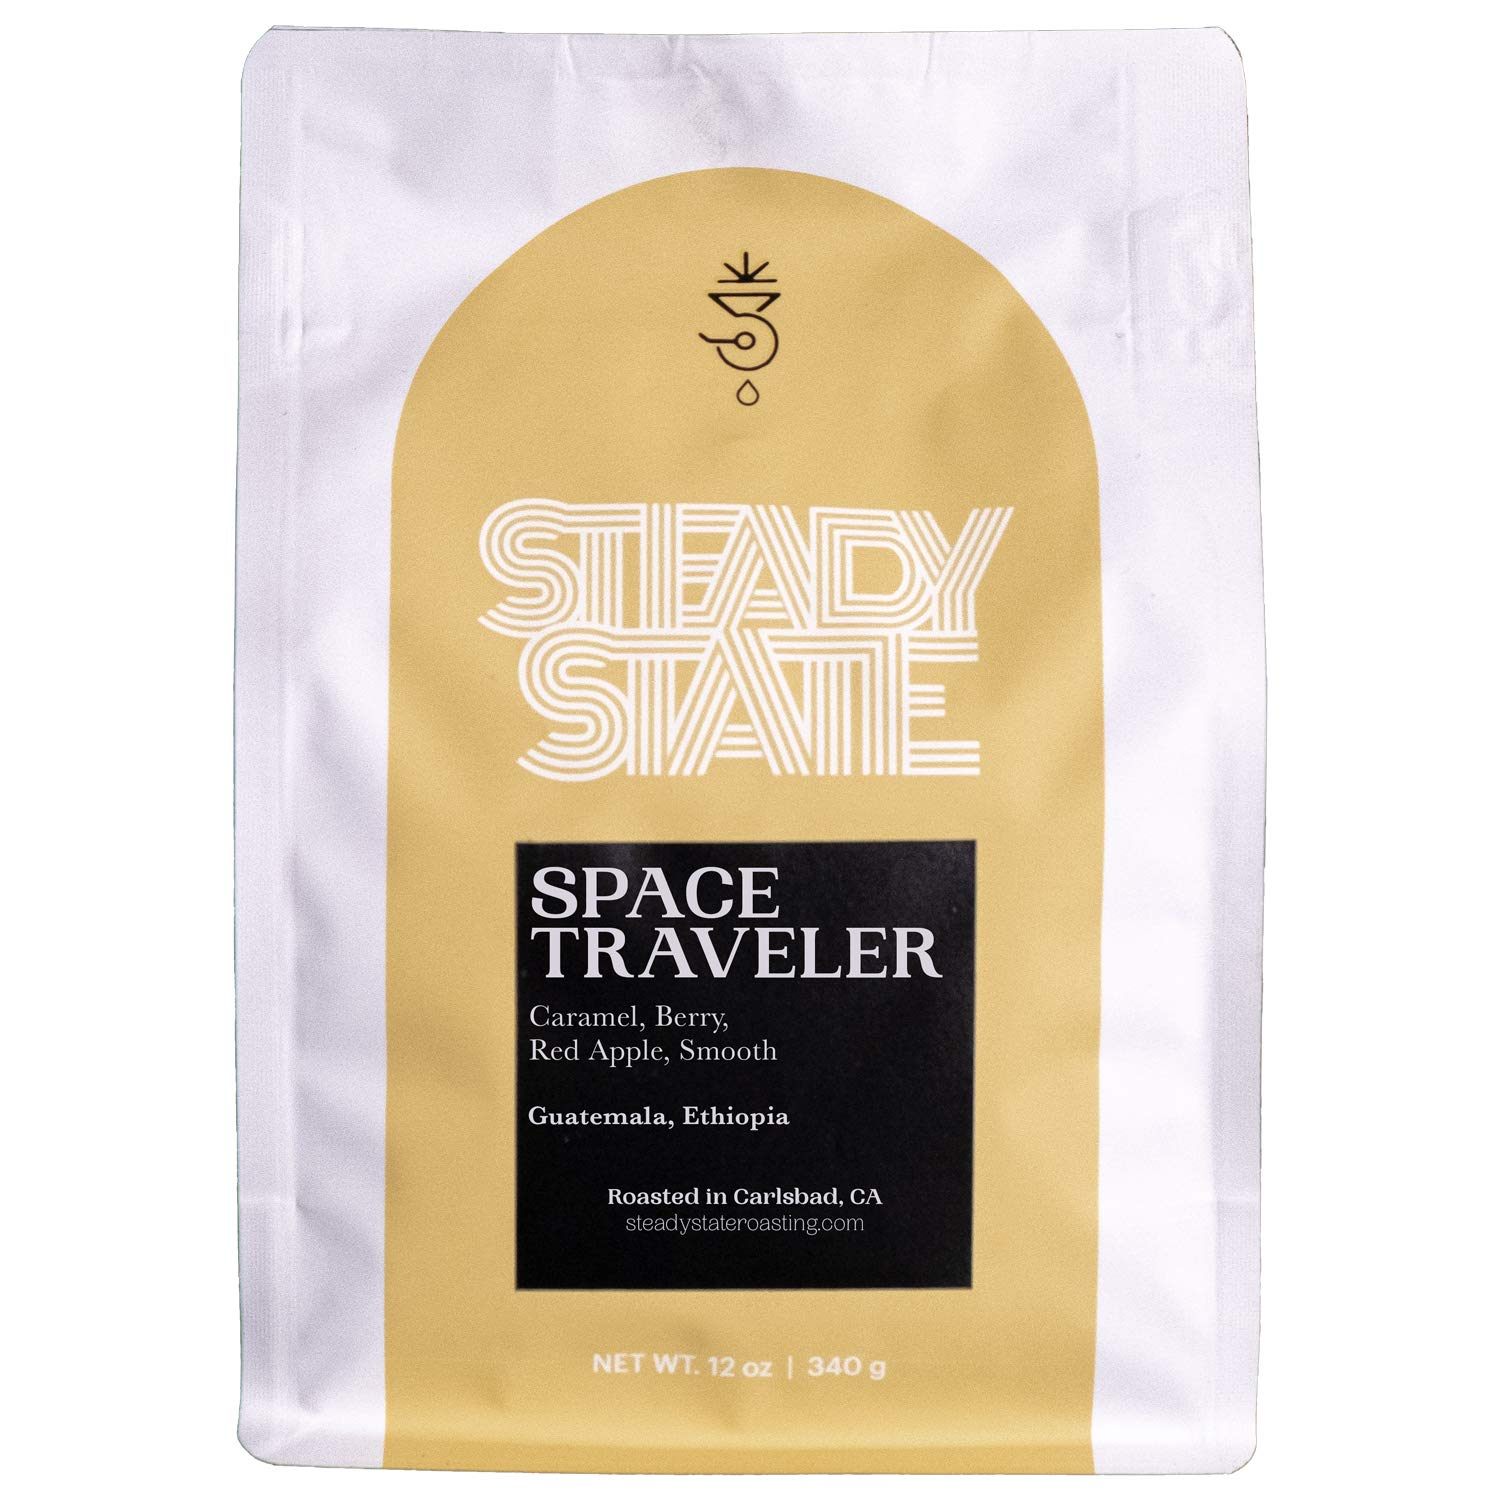 Whole Bean Coffee, Light Roasted Blended Coffee, Space Traveler 12oz Coffee Bag, Caramel, Chocolaty, Coffee Beans by Steady State Roasting